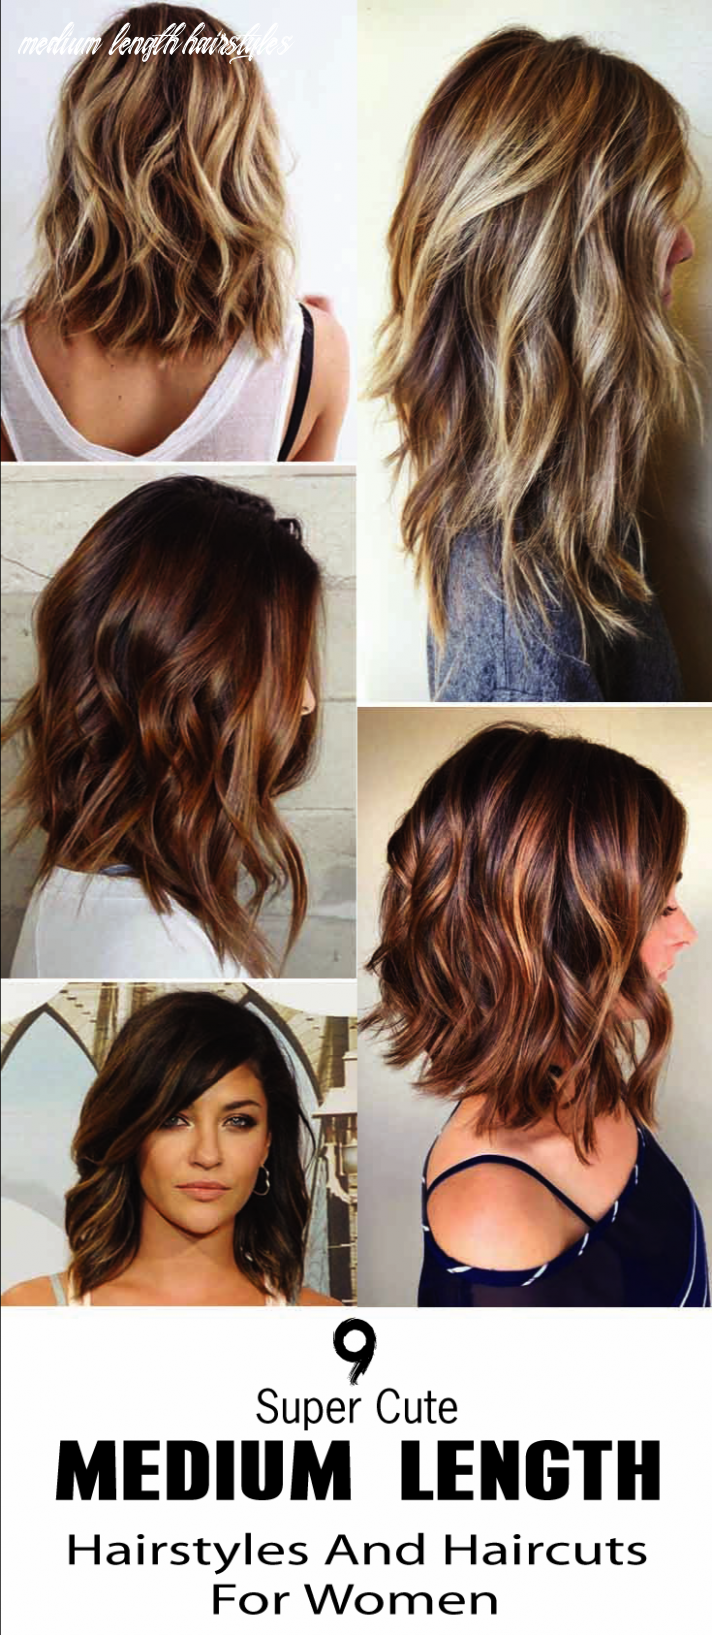 12 Super Cute Medium Length Hairstyles And Haircuts For Women ..